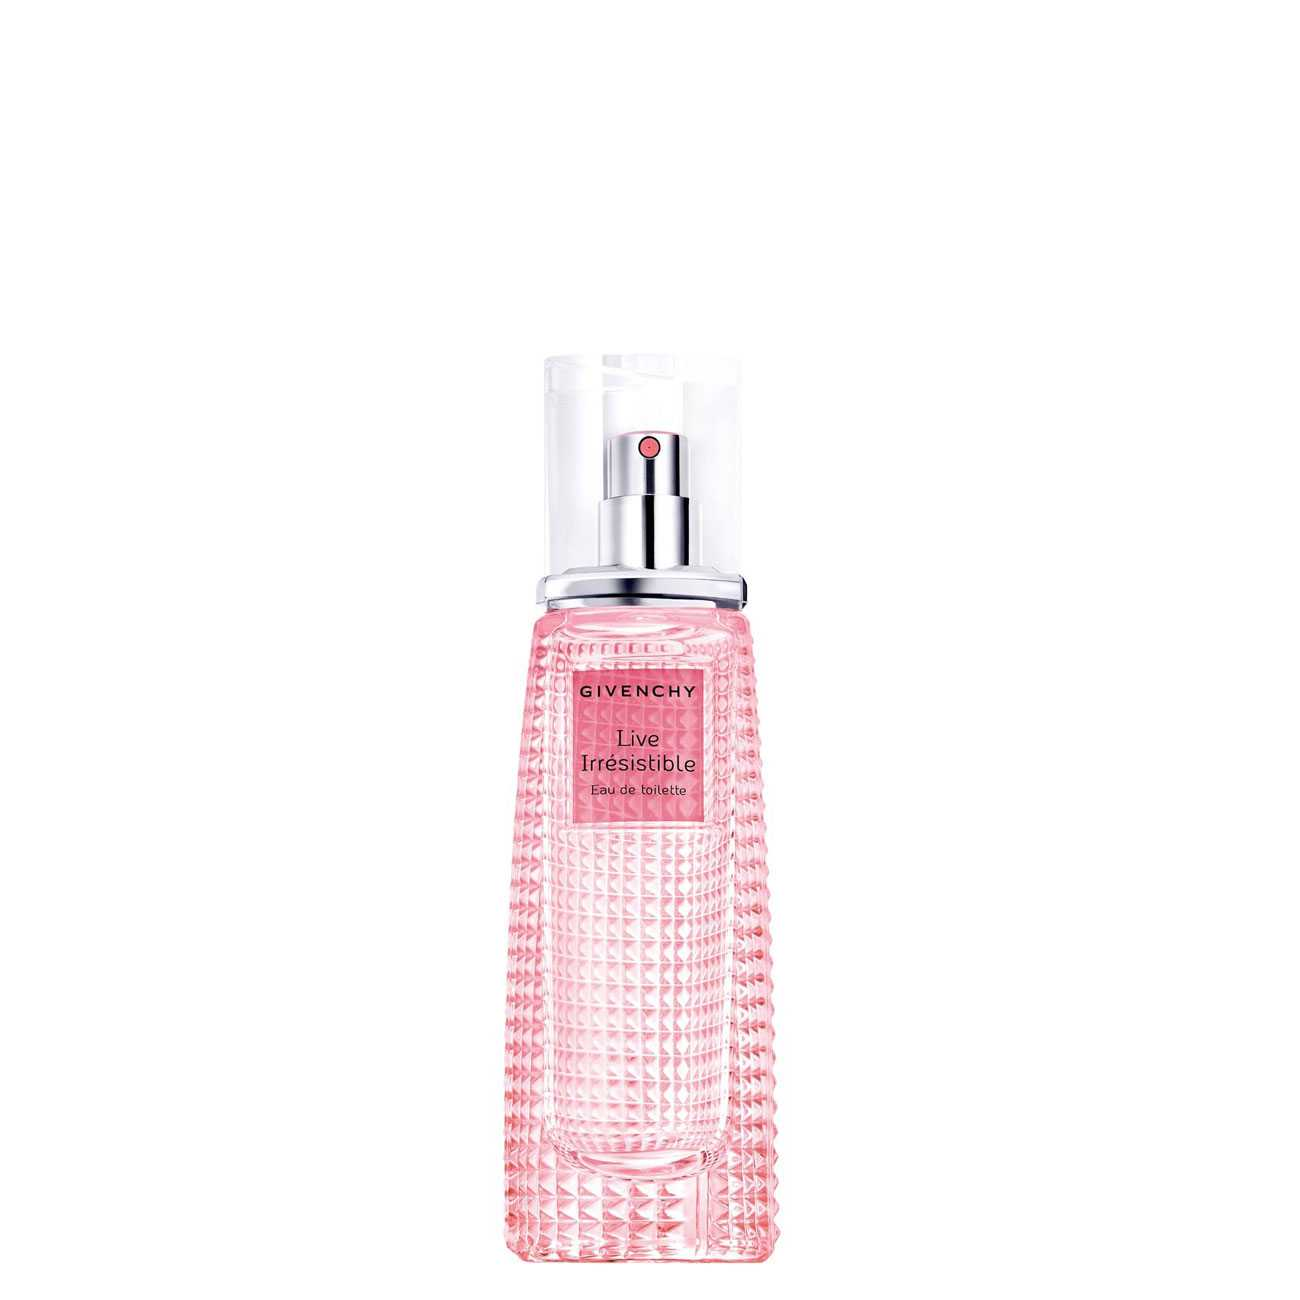 Live Irresistible 40ml